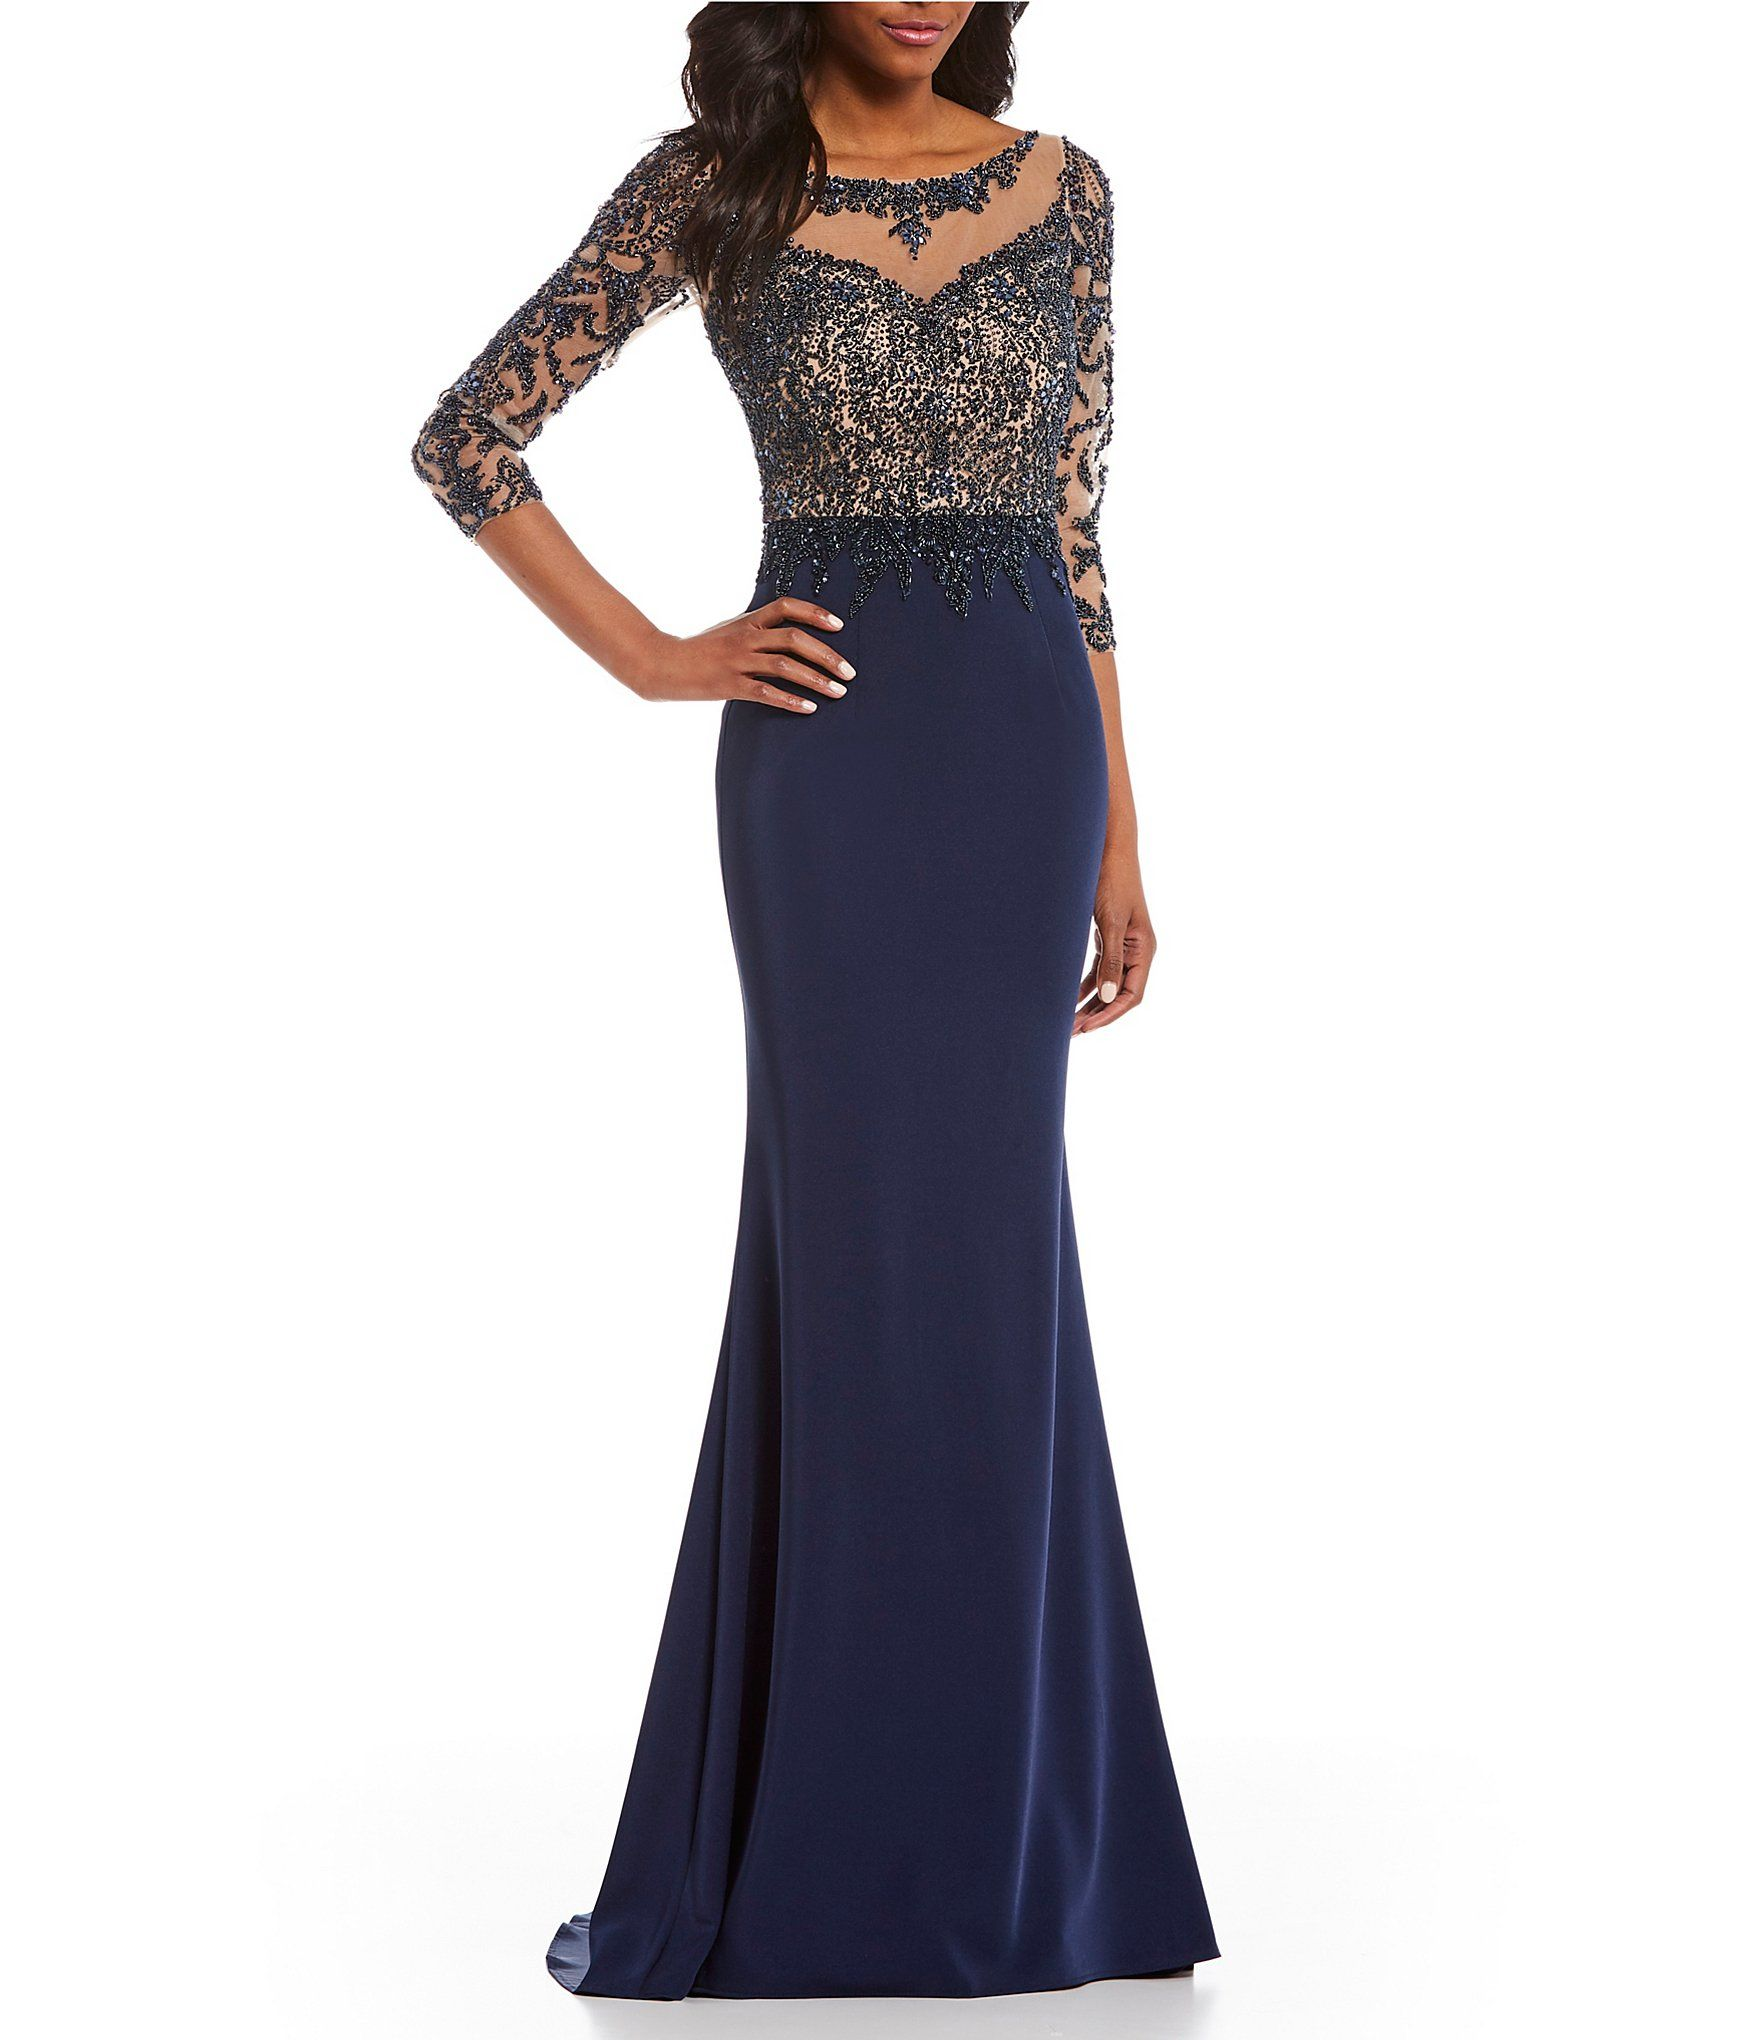 Shop For Terani Couture Illusion Lace 3 4 Sleeve Beaded Bodice Gown At Dillards Com Visit Dillards Com To Find Clothing Acces Gowns Dresses Mob Dresses Gowns [ 2040 x 1760 Pixel ]